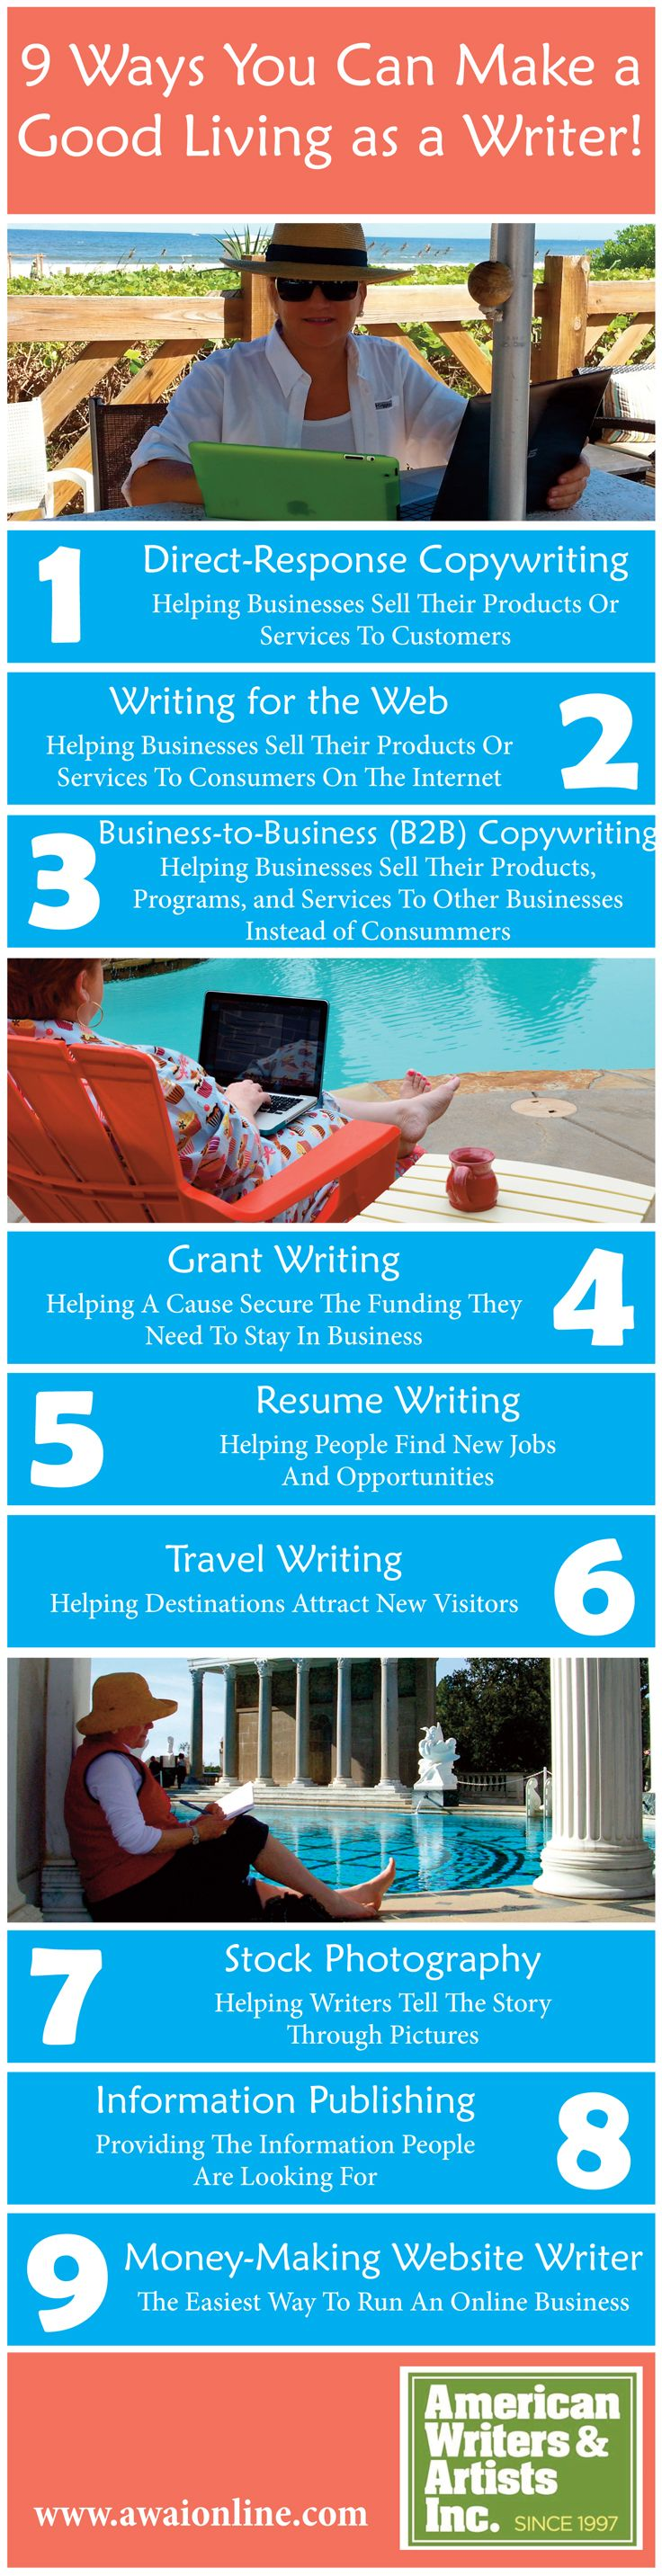 17 best images about barefoot writer career discover 9 ways you can make a very good living as a writer